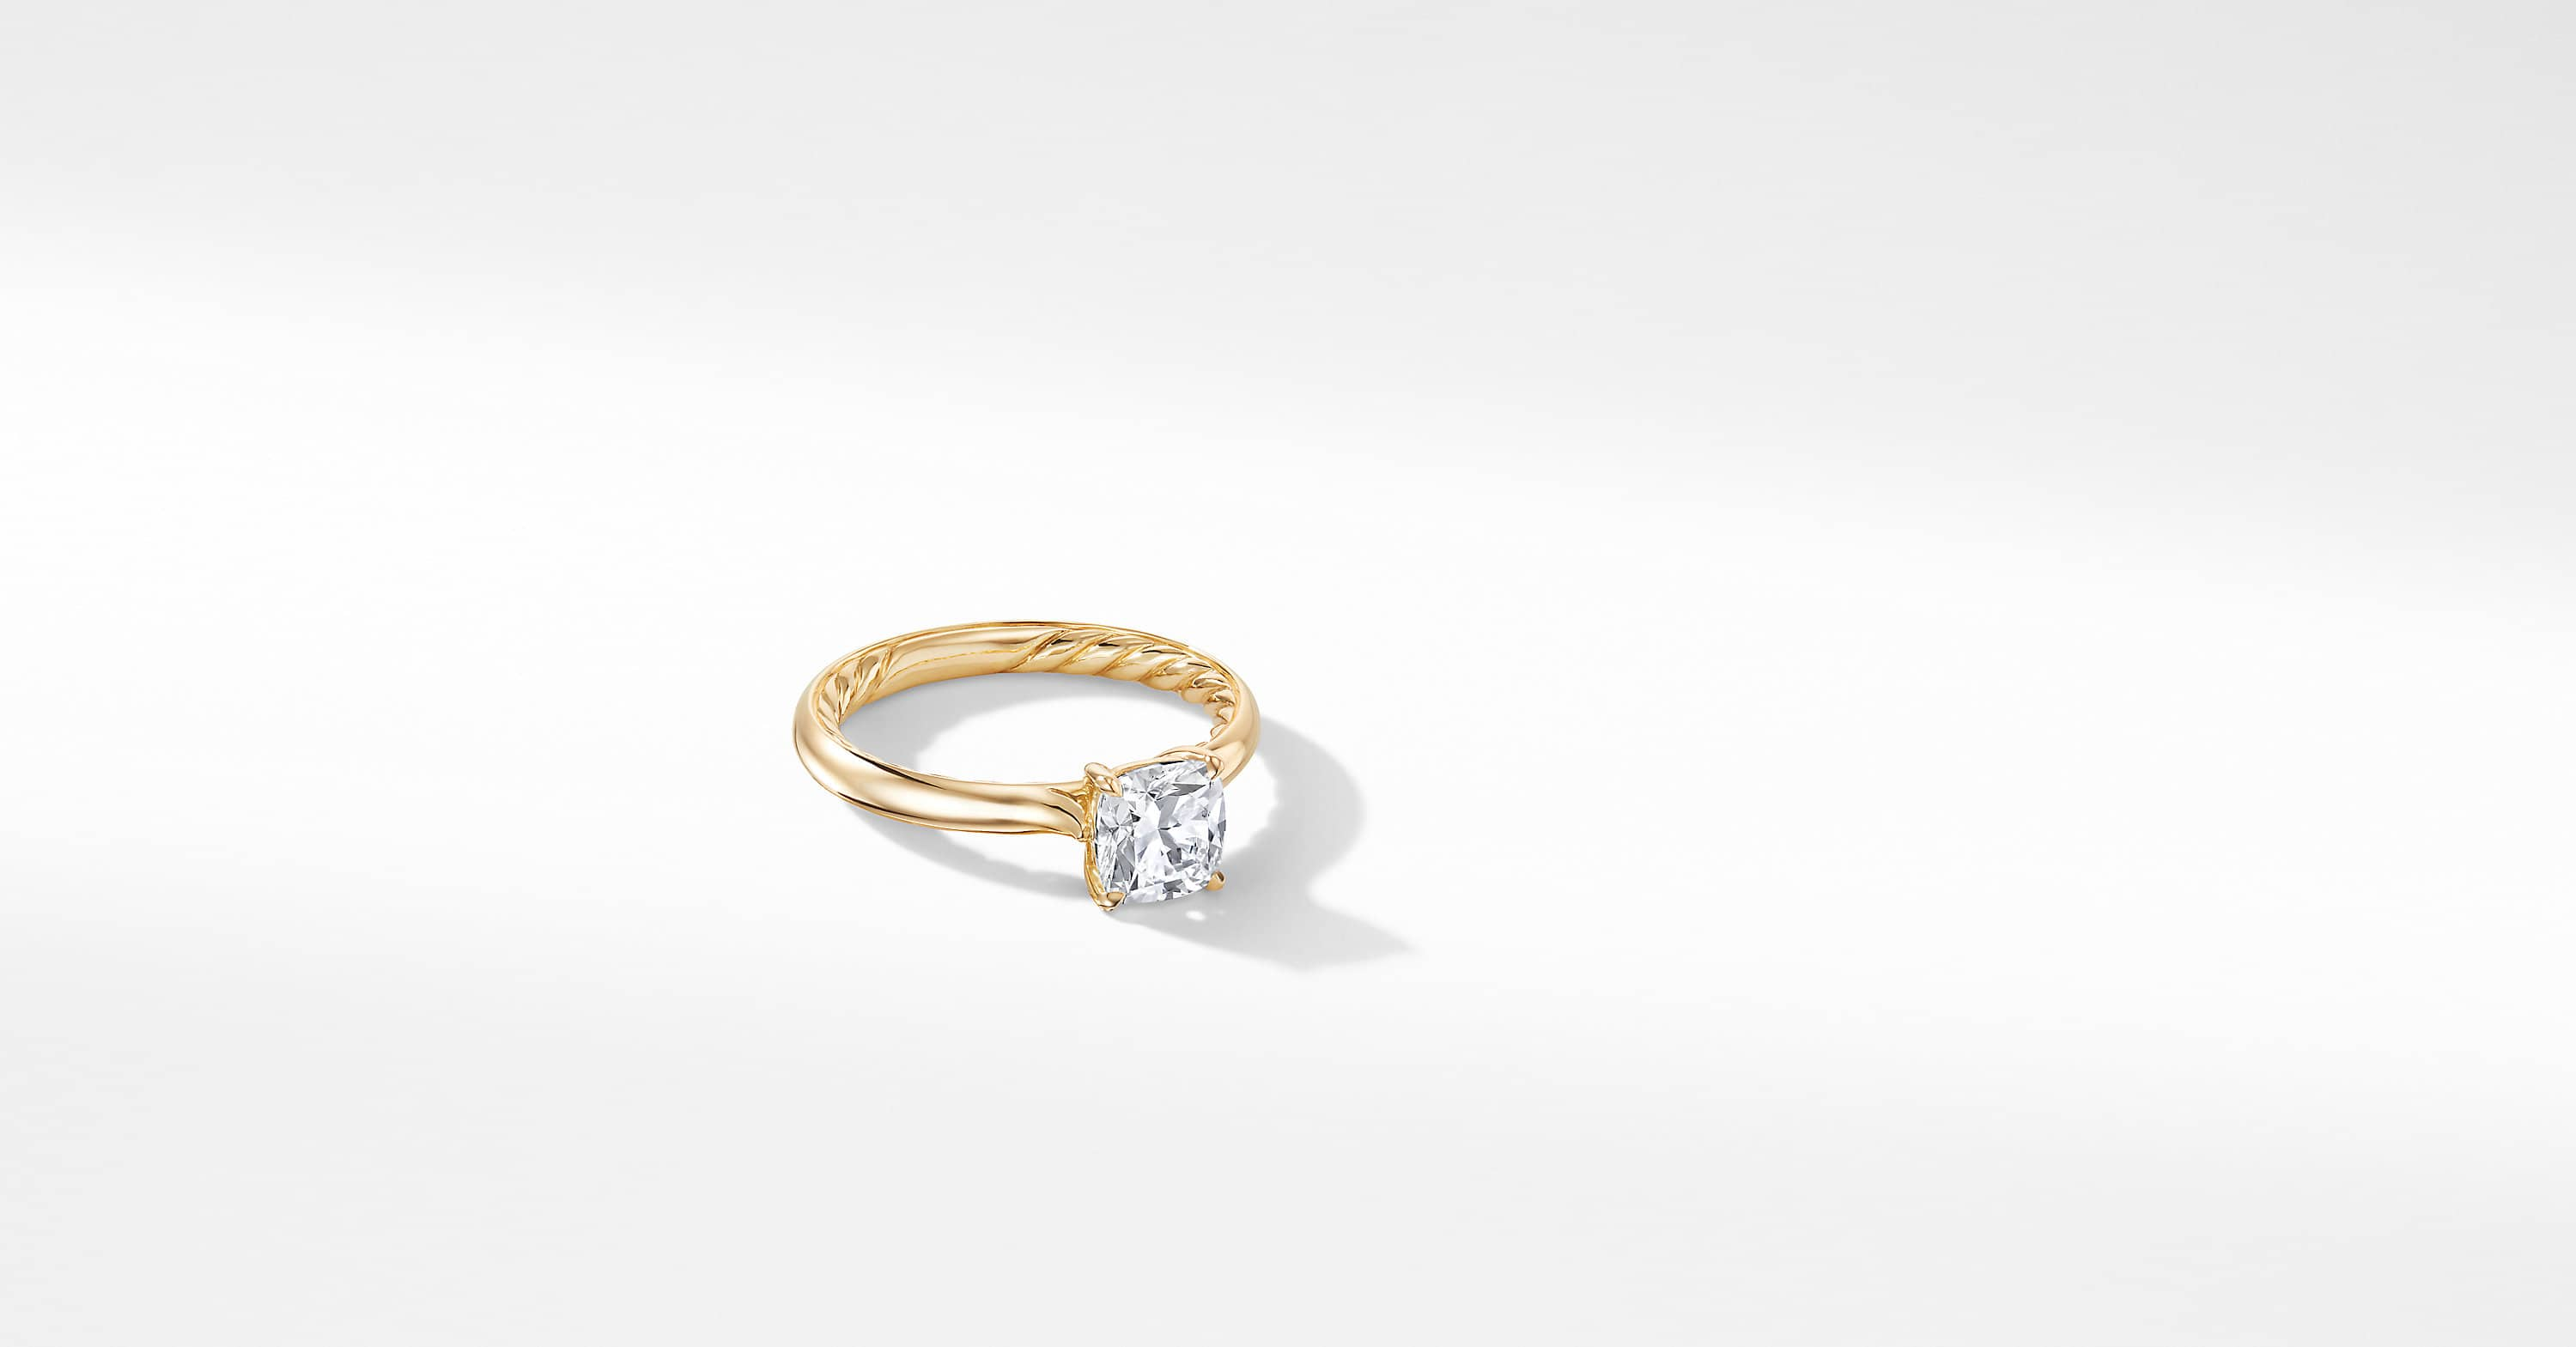 DY Eden Engagement Ring in 18K Yellow Gold, Cushion